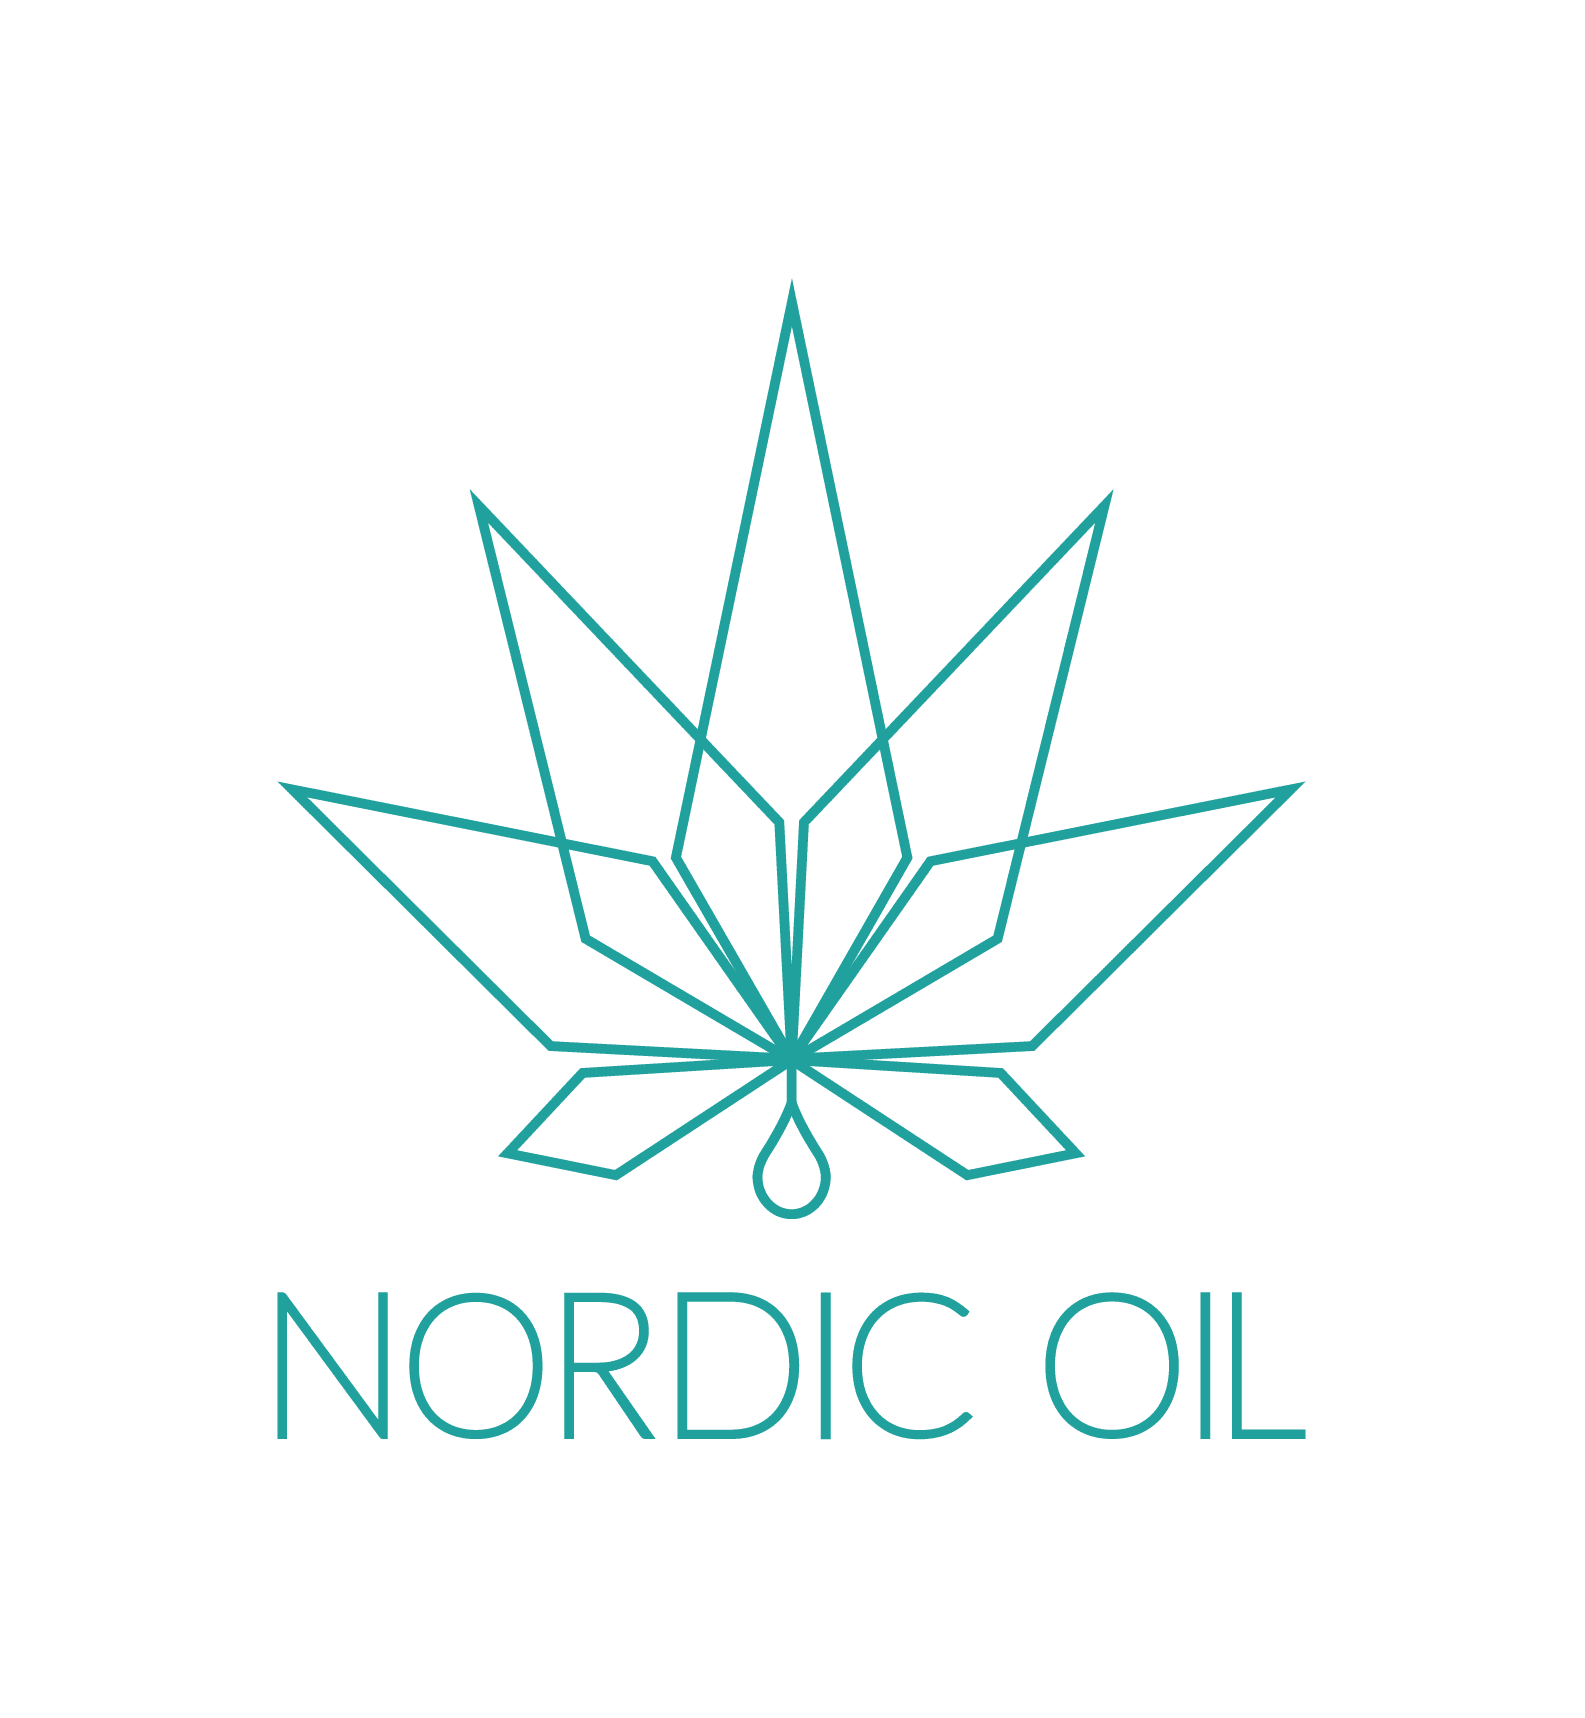 Nordic Oil CBD TRAVA Logo